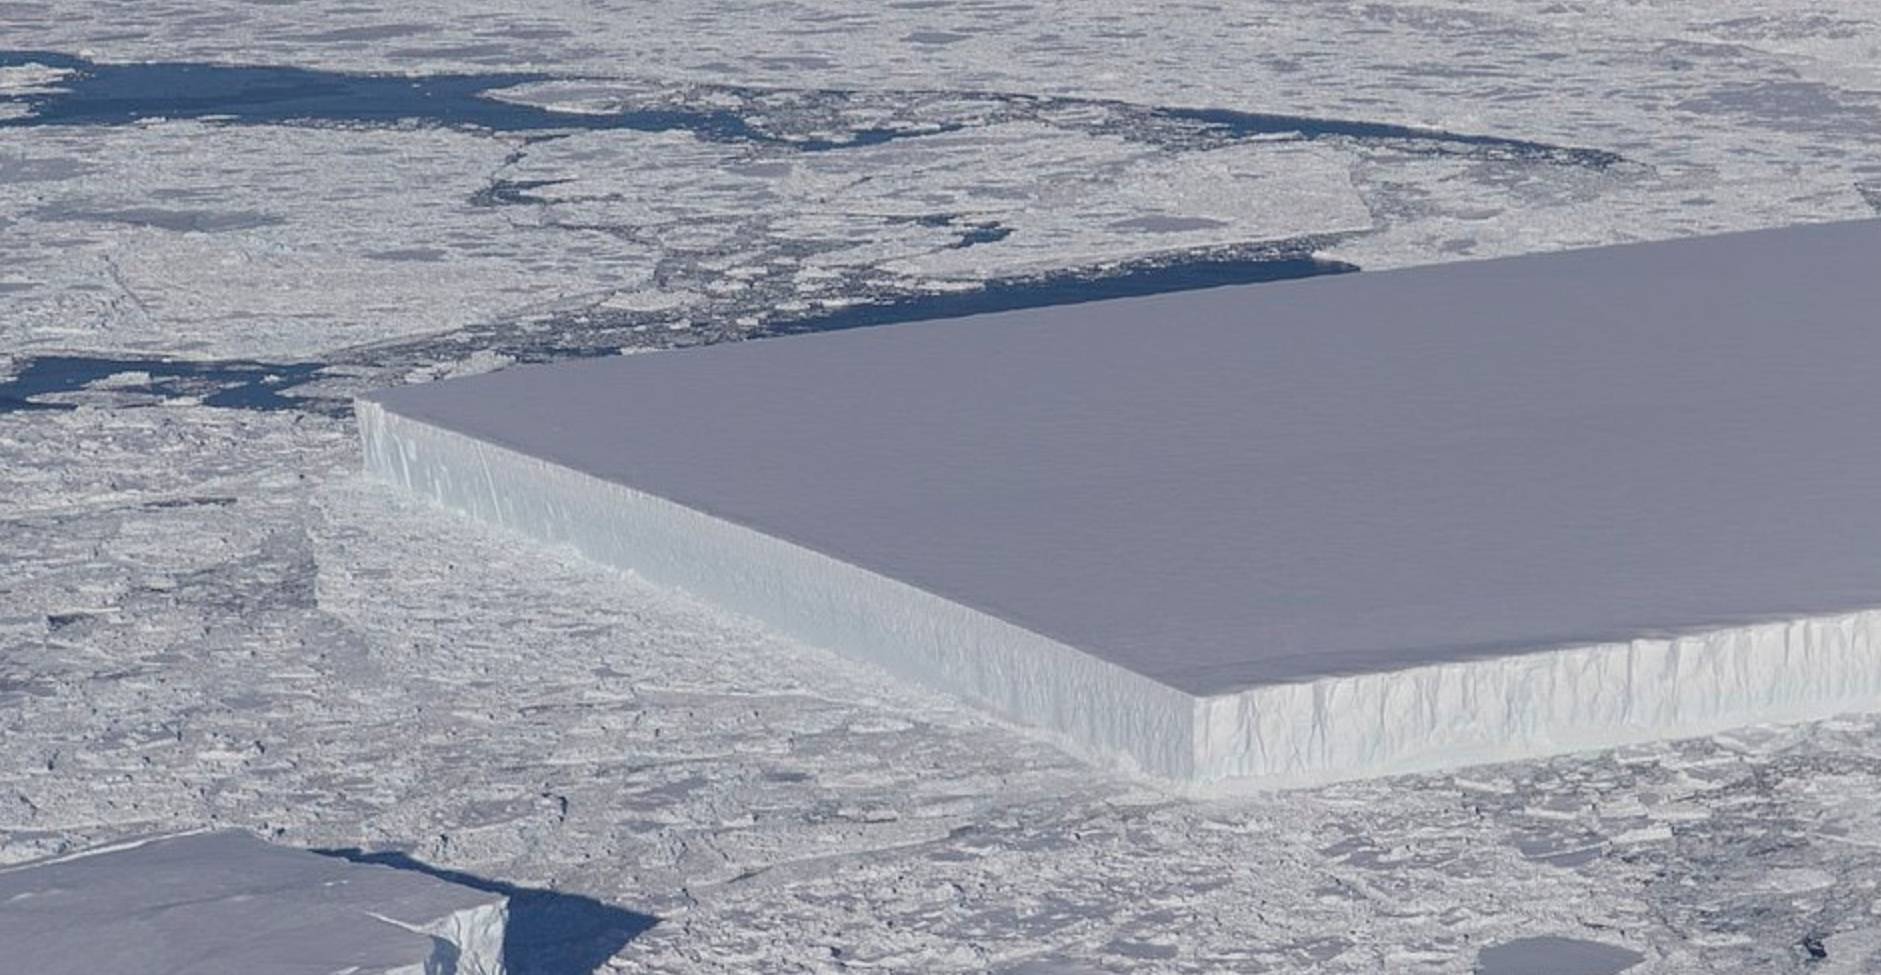 Near-perfect rectangular iceberg found in Antarctica